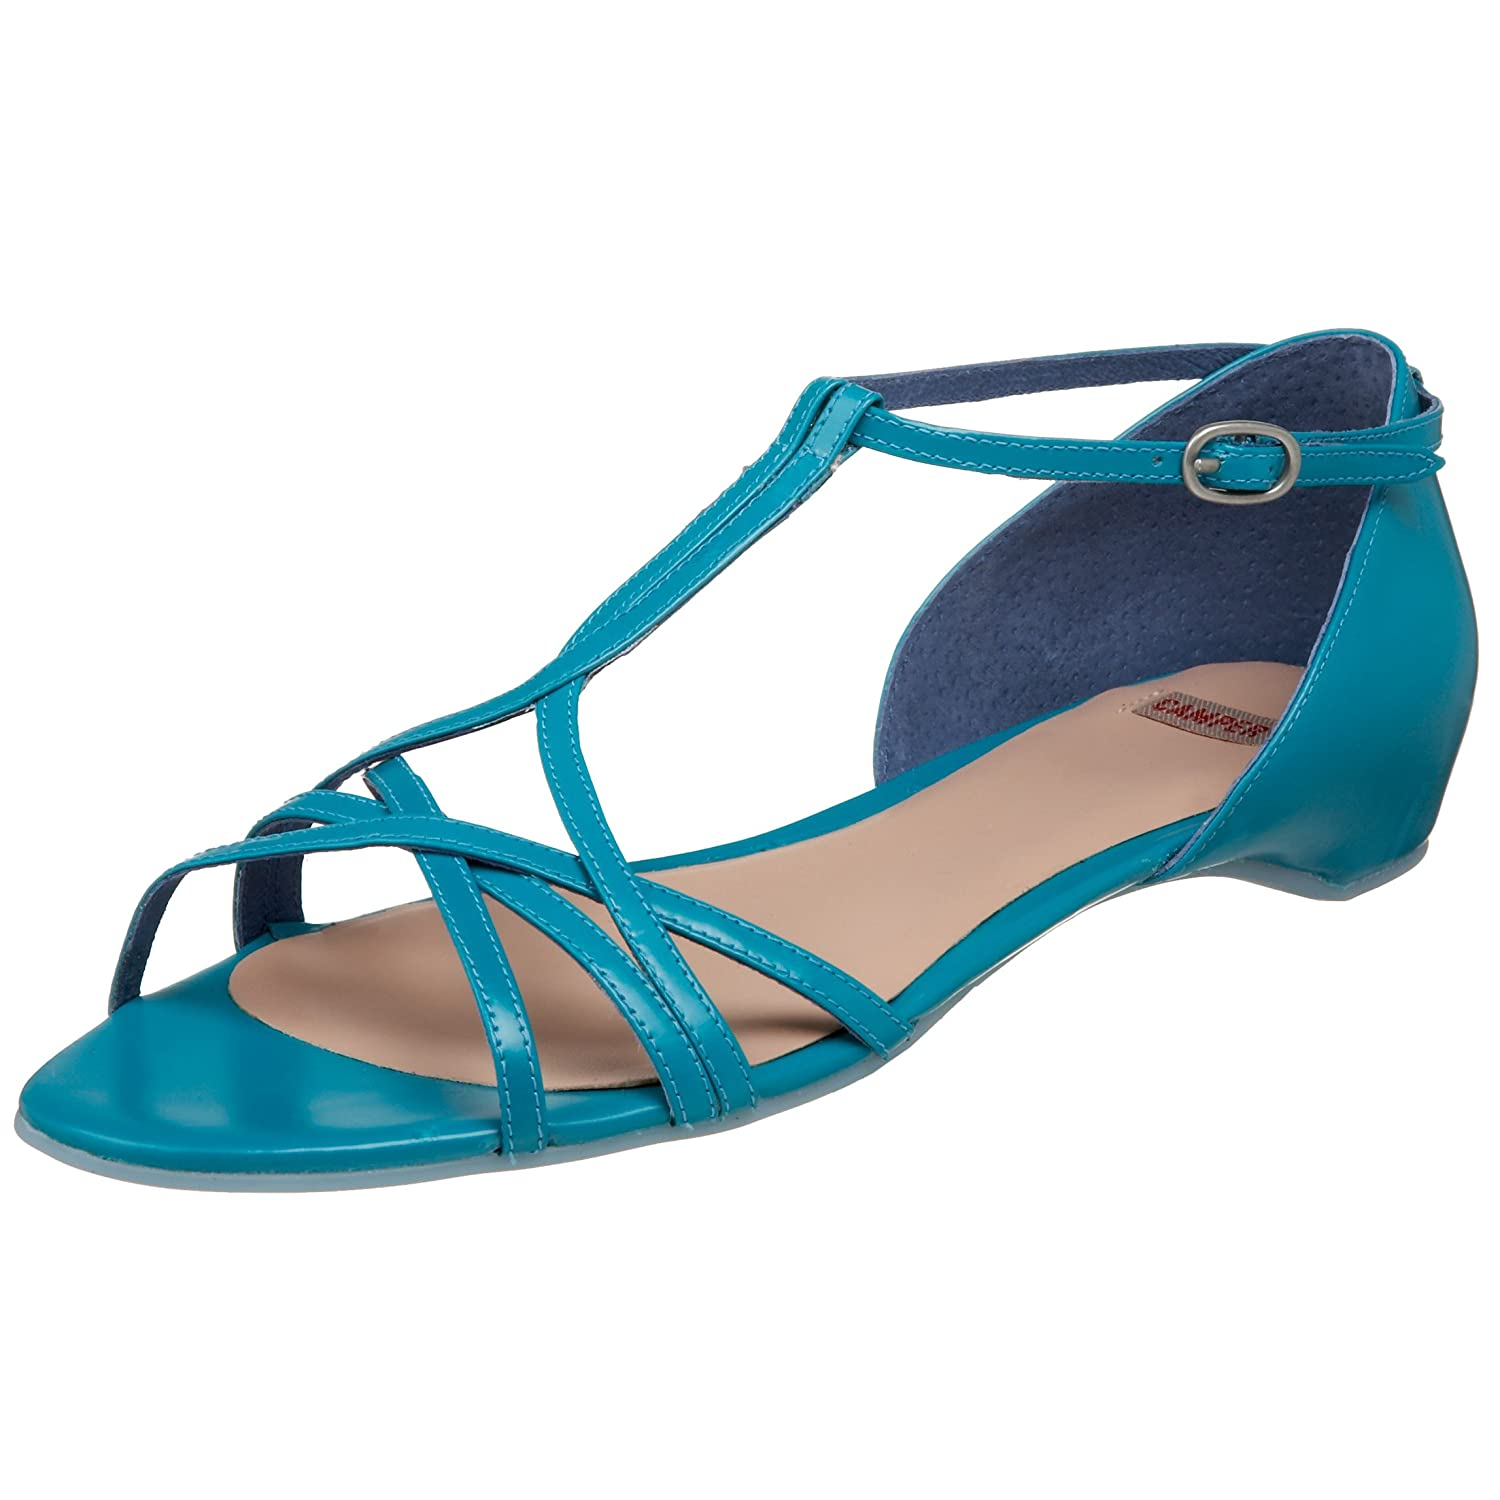 Camper 20918 006 Leia Sandal Free Overnight Shipping Return Shipping Endless com from endless.com